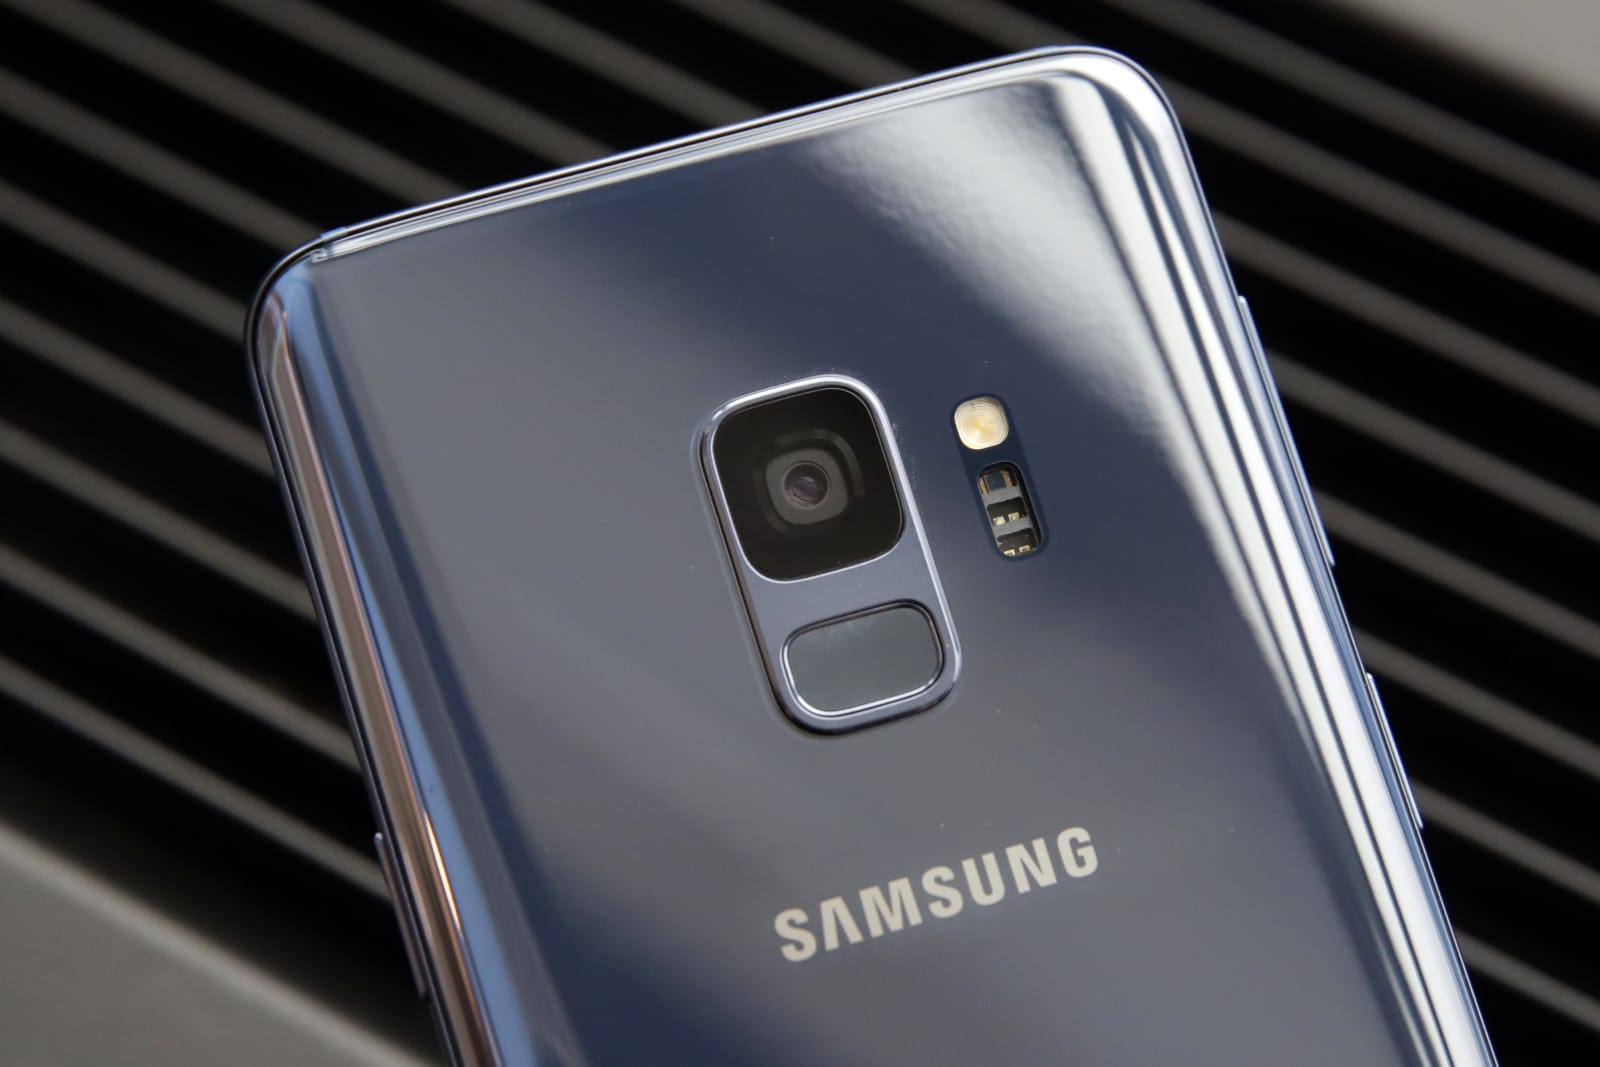 Samsung may be working on a low-light camera mode called